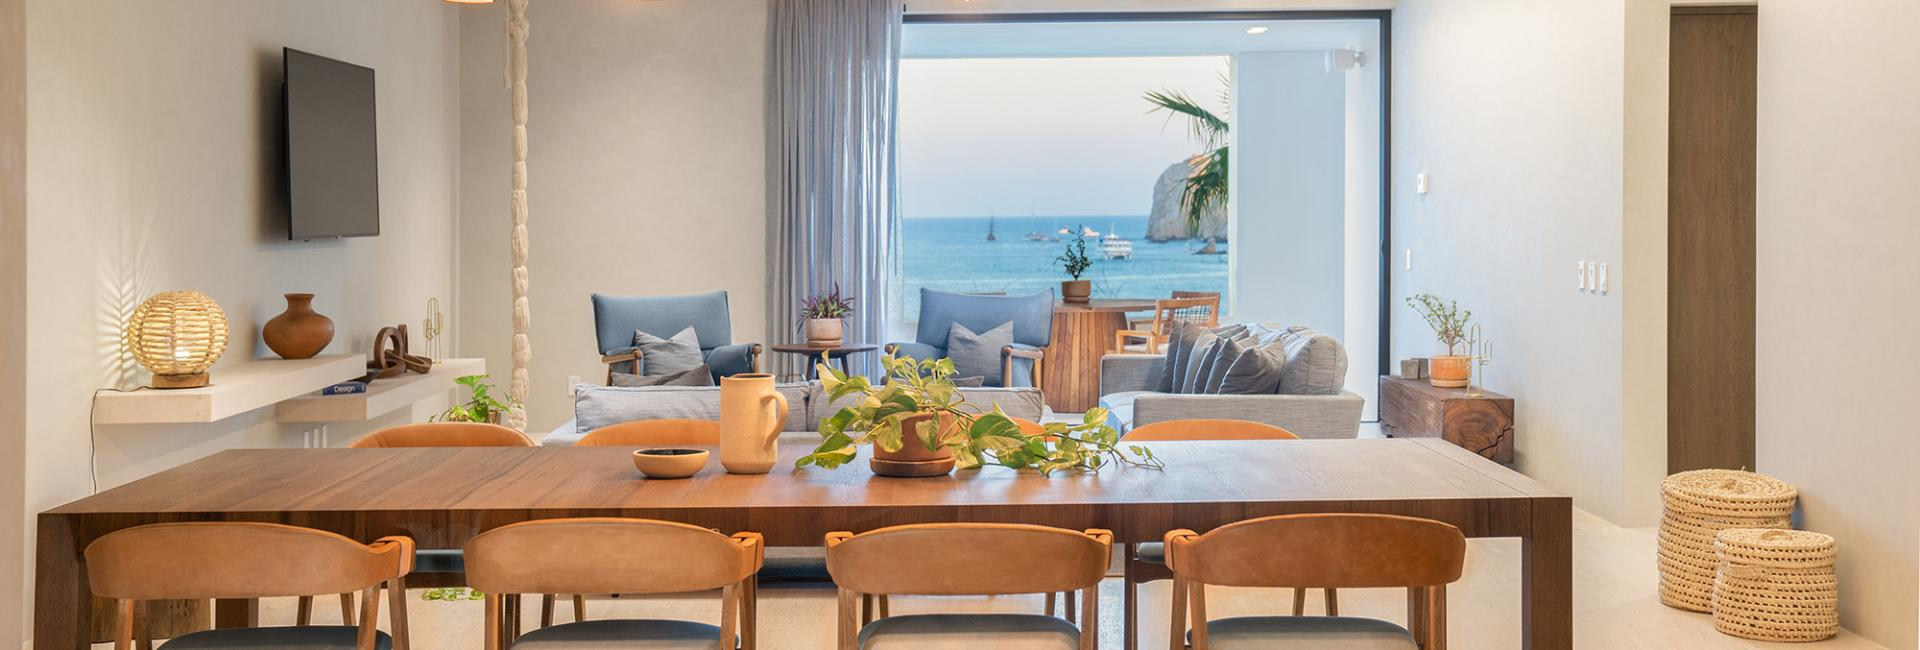 Three Bedroom Ocean View Home Dining Area